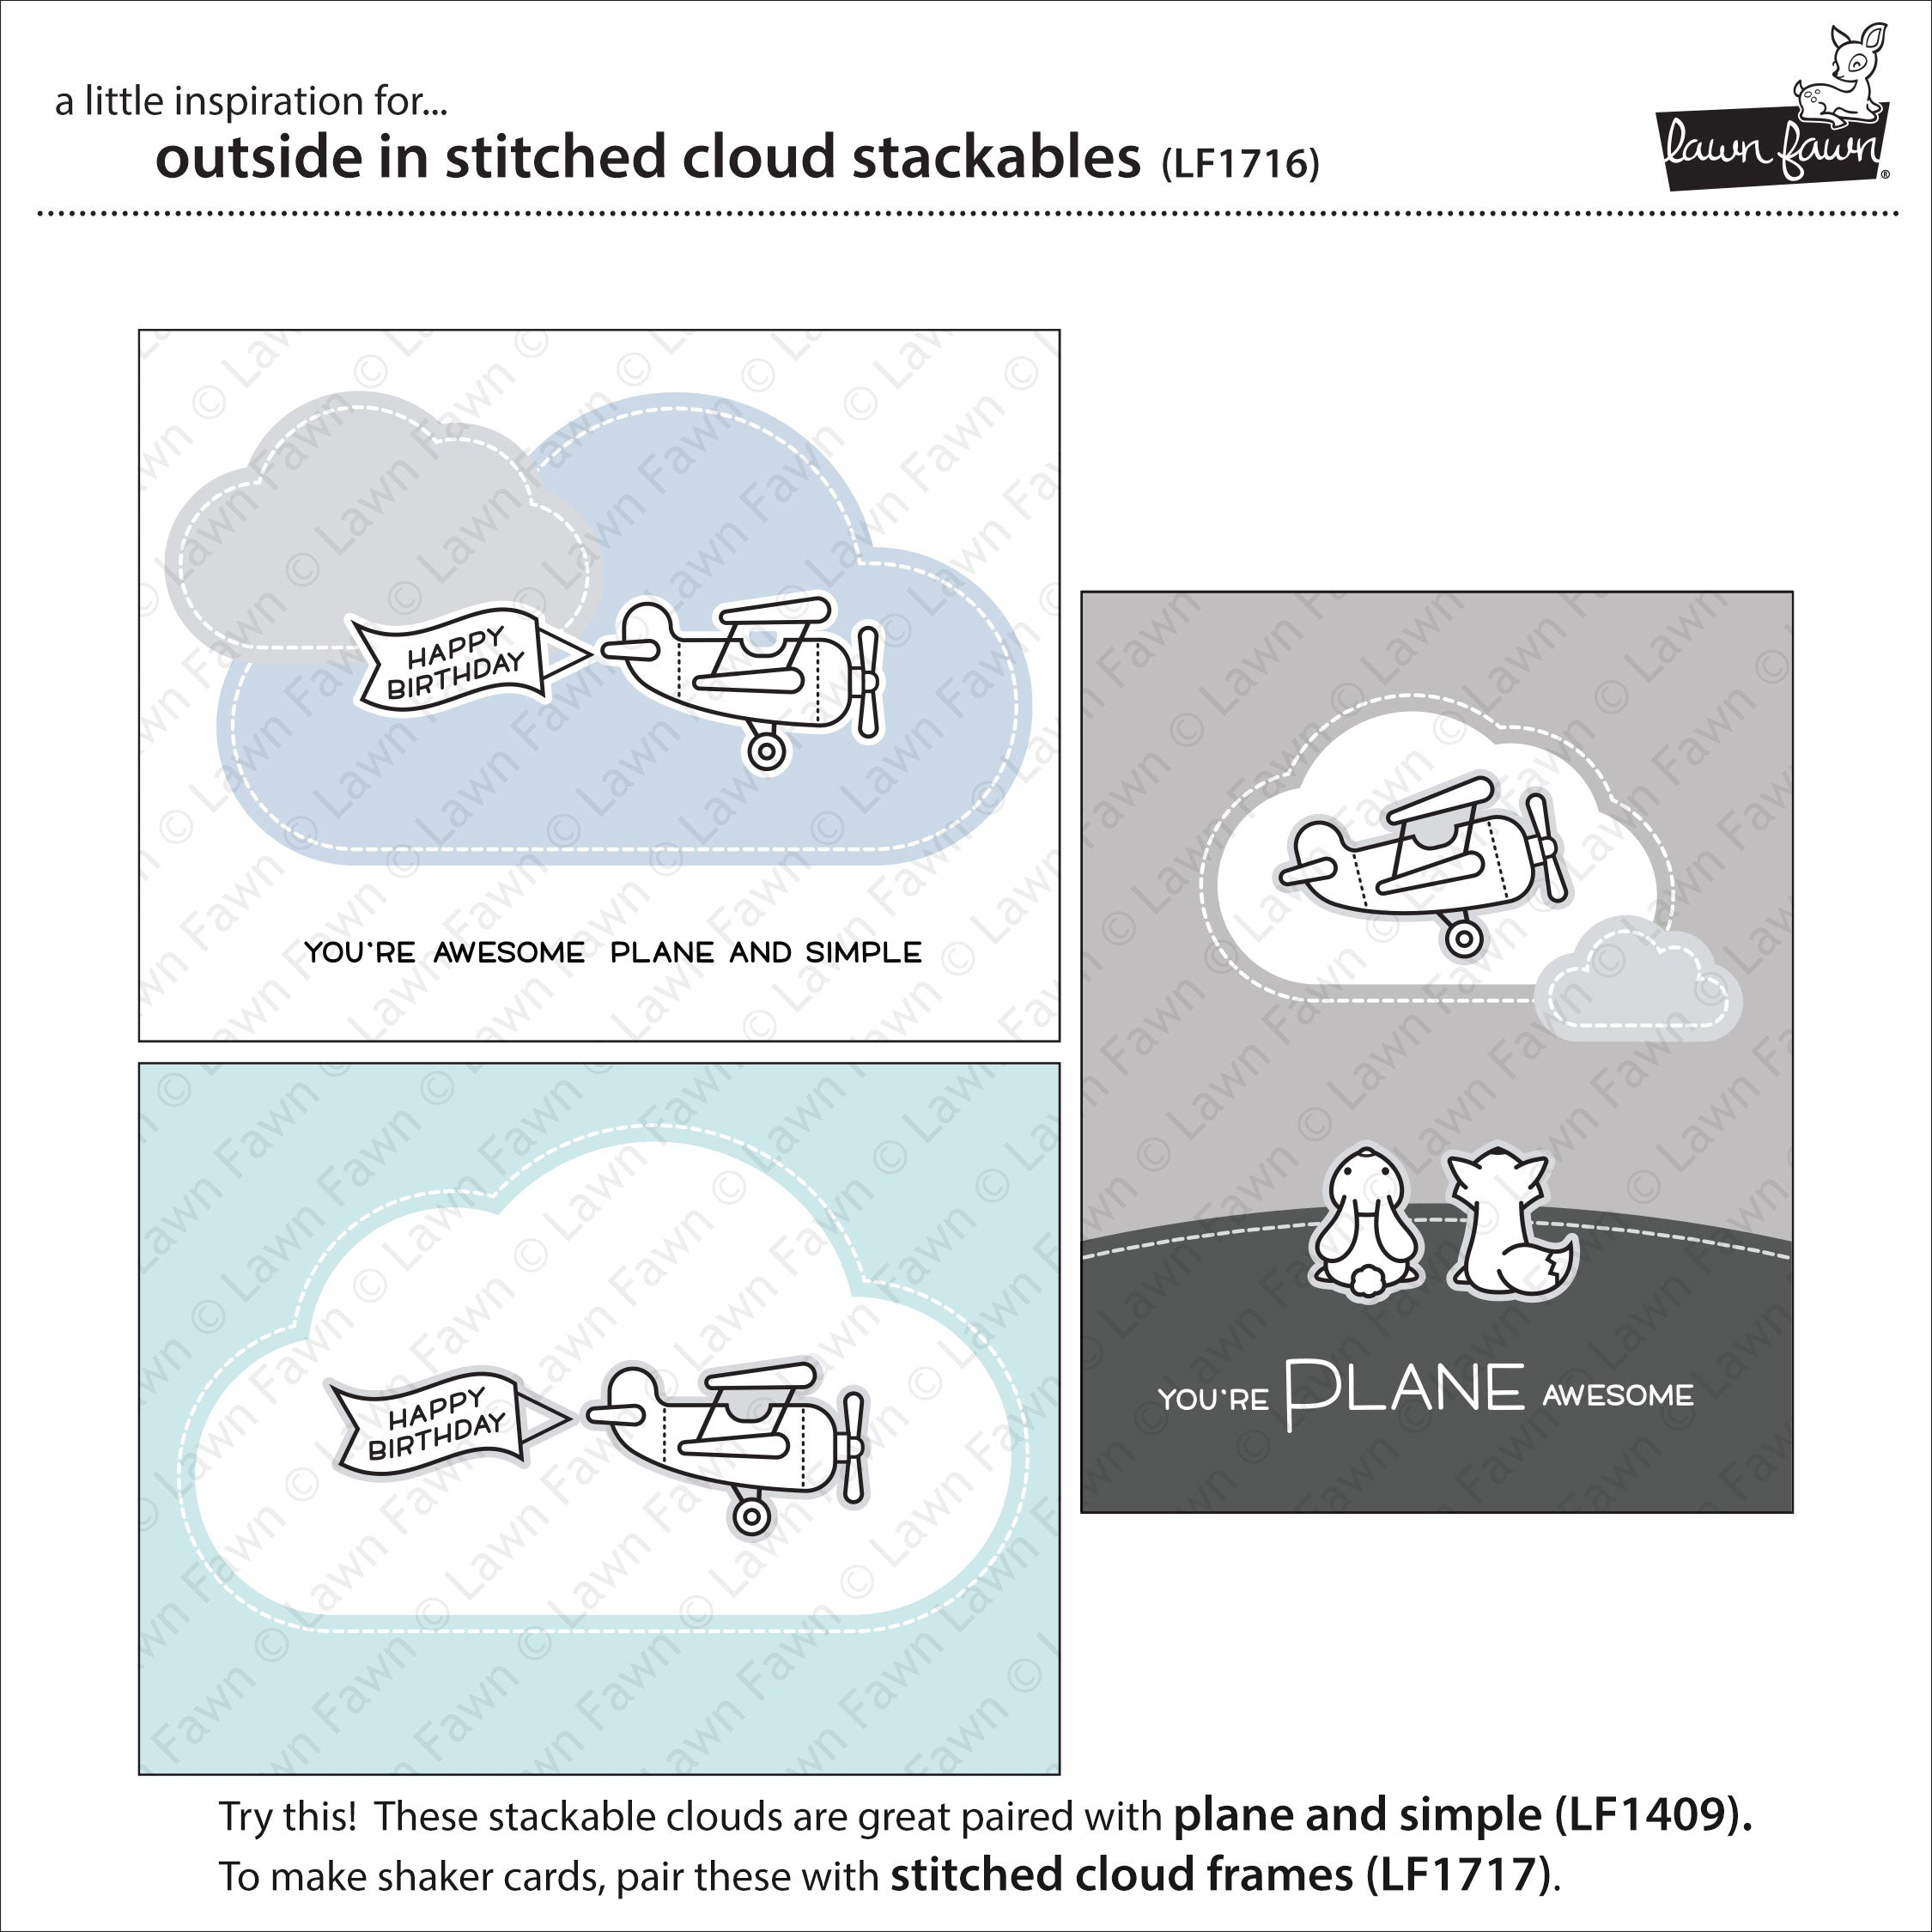 outside in stitched cloud stackables